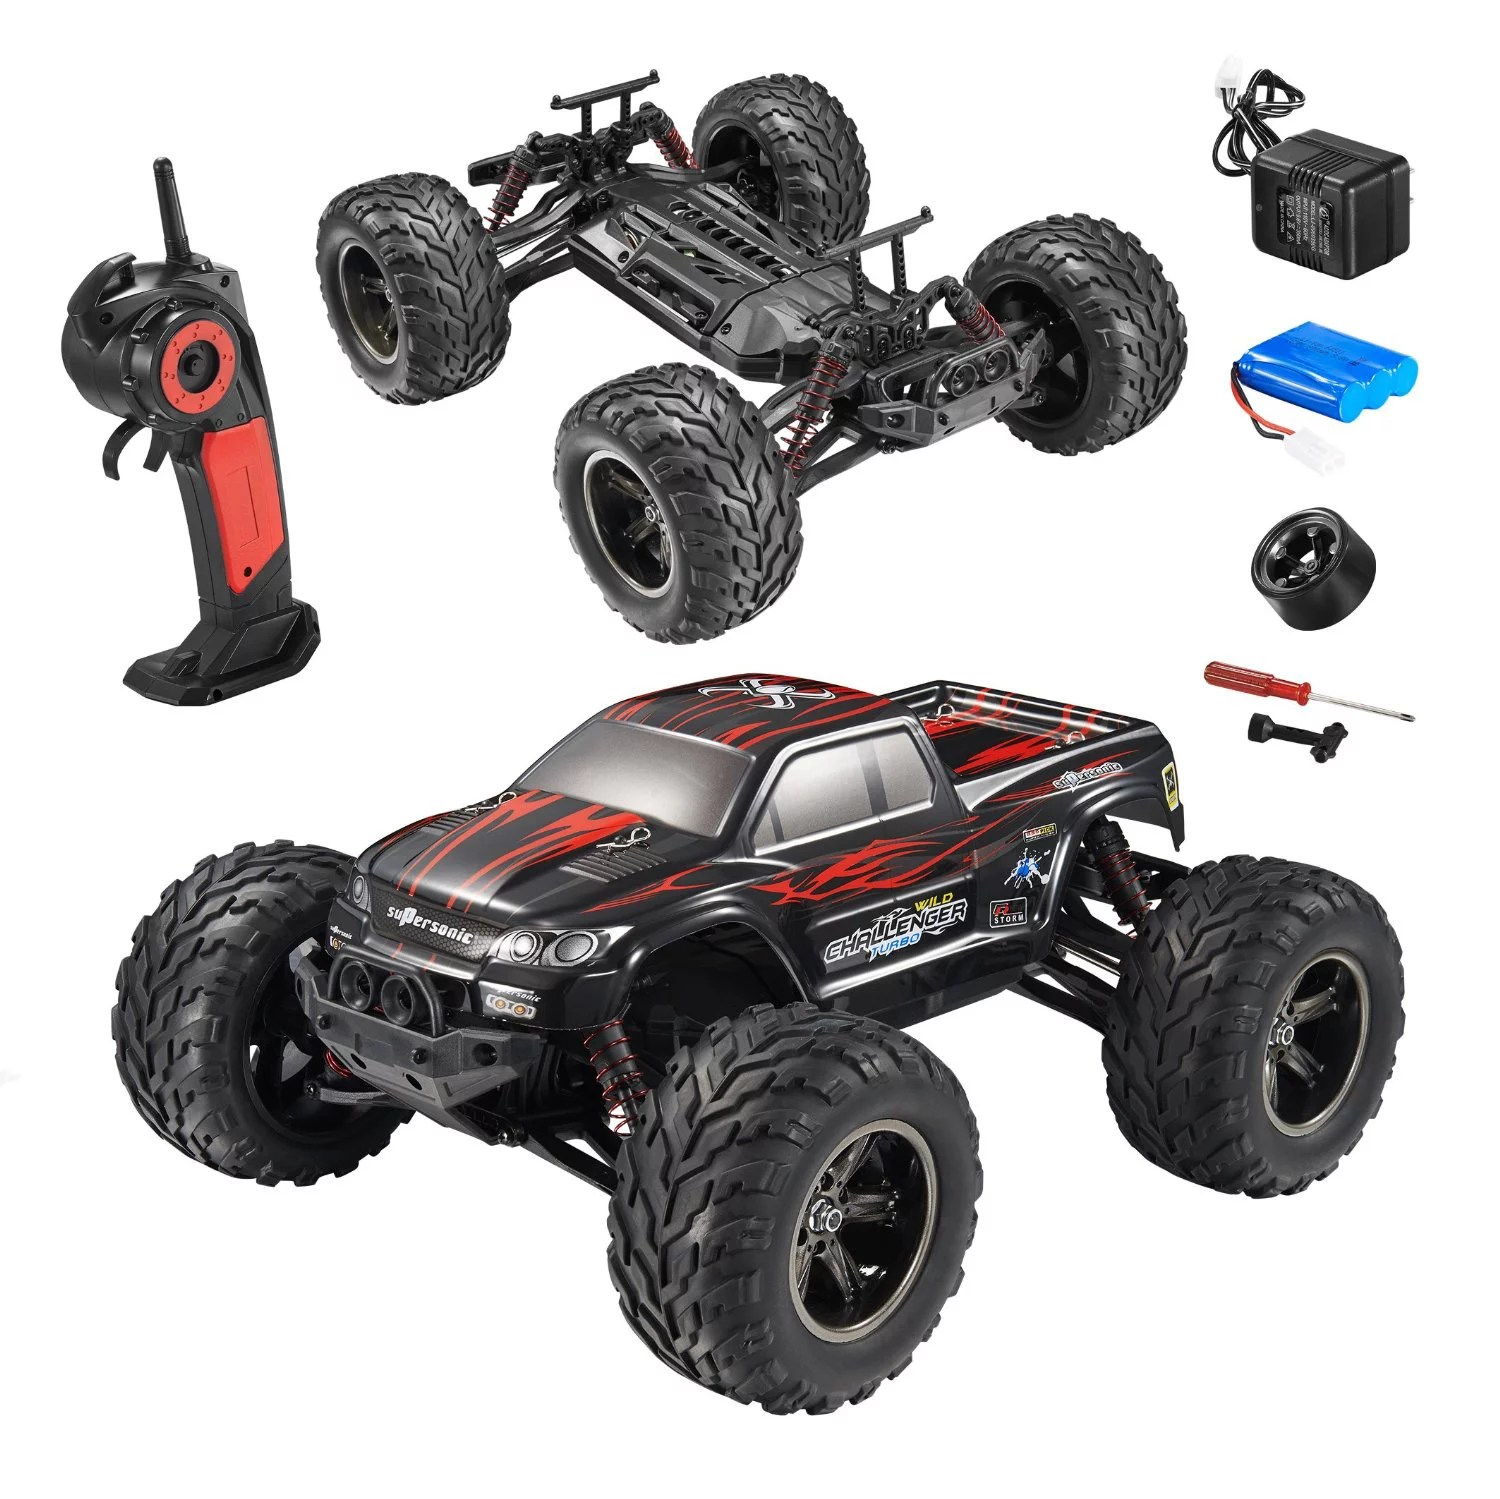 Rtr Rc Trucks Electric Fmt 1 12 Ipx4 Scale Electric Rc Car Offroad 2 4ghz 2wd High Speed 33 Mph Remote Controlled Car Truck Color Red